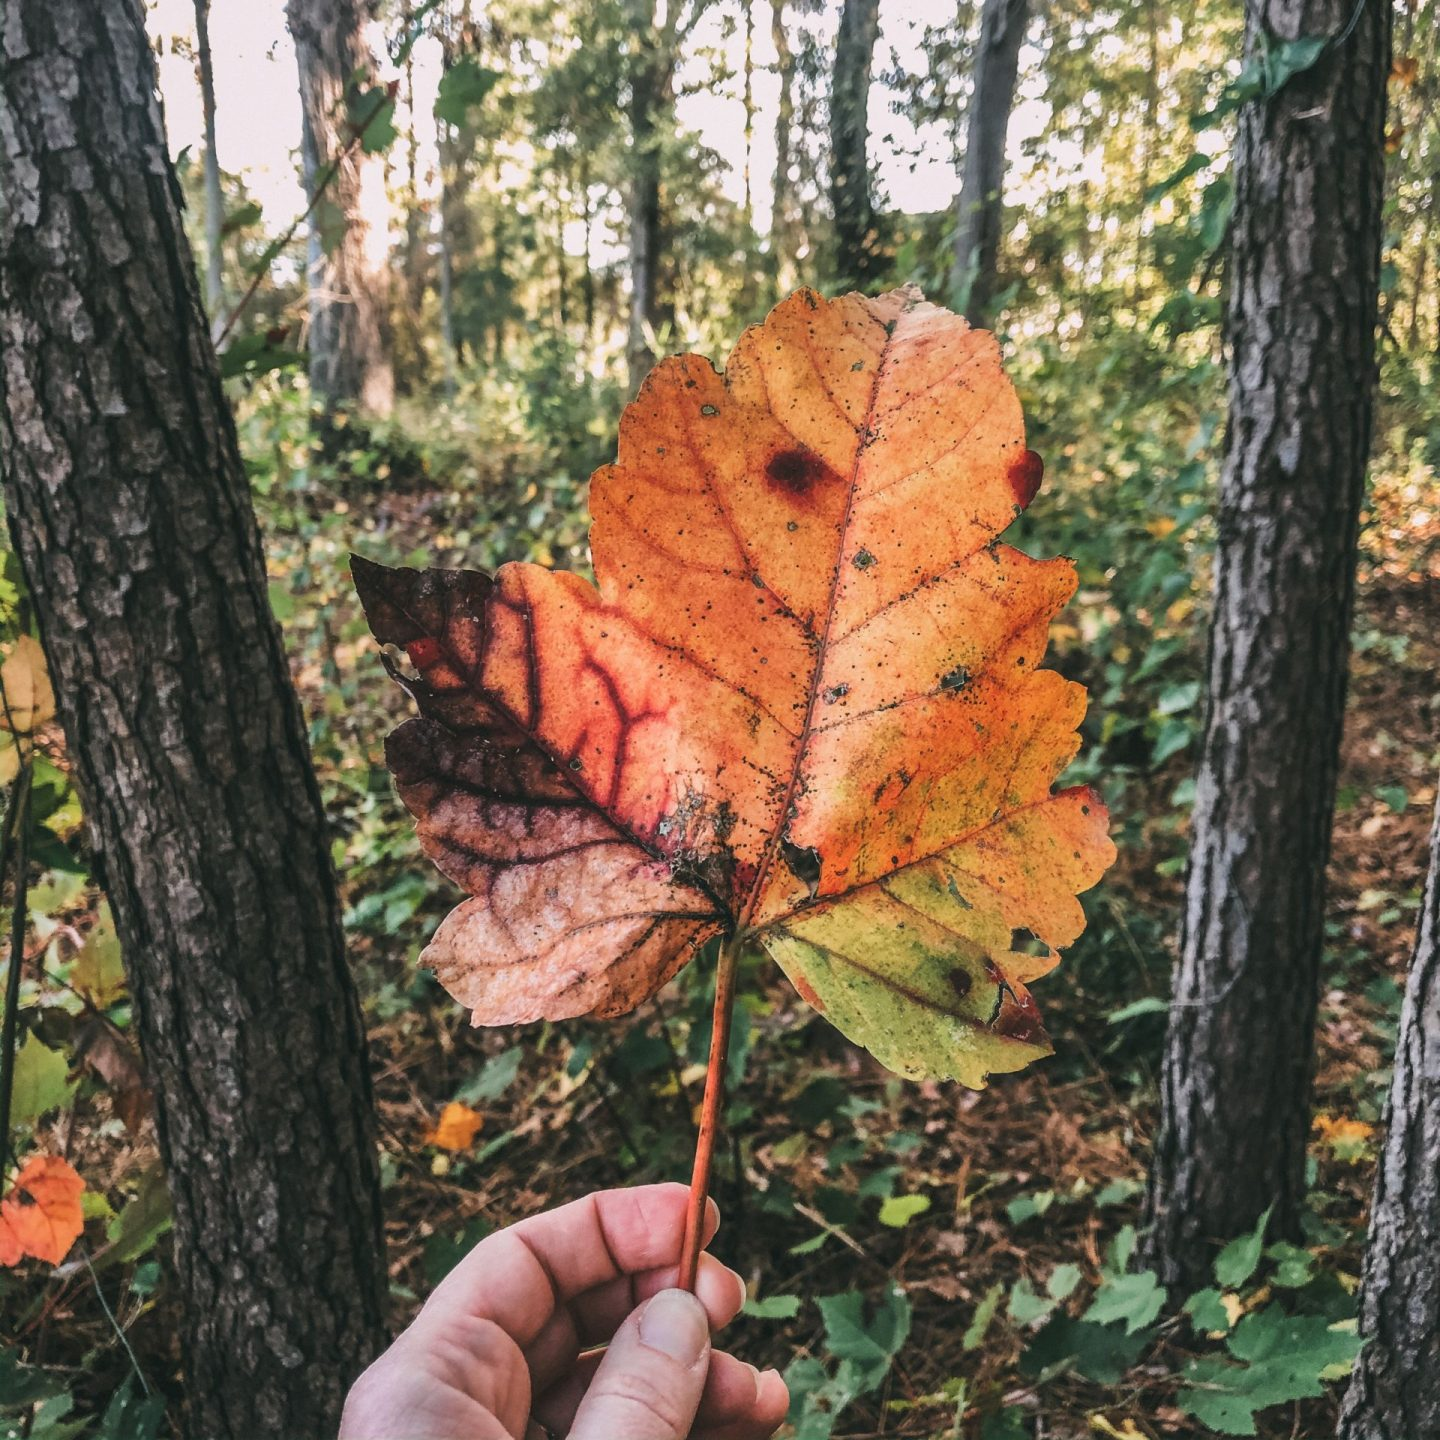 NC blogger Rebecca Lately shares 5 things to love about autumn.  If you are sad about the end of summer or also love autumn, check this out!